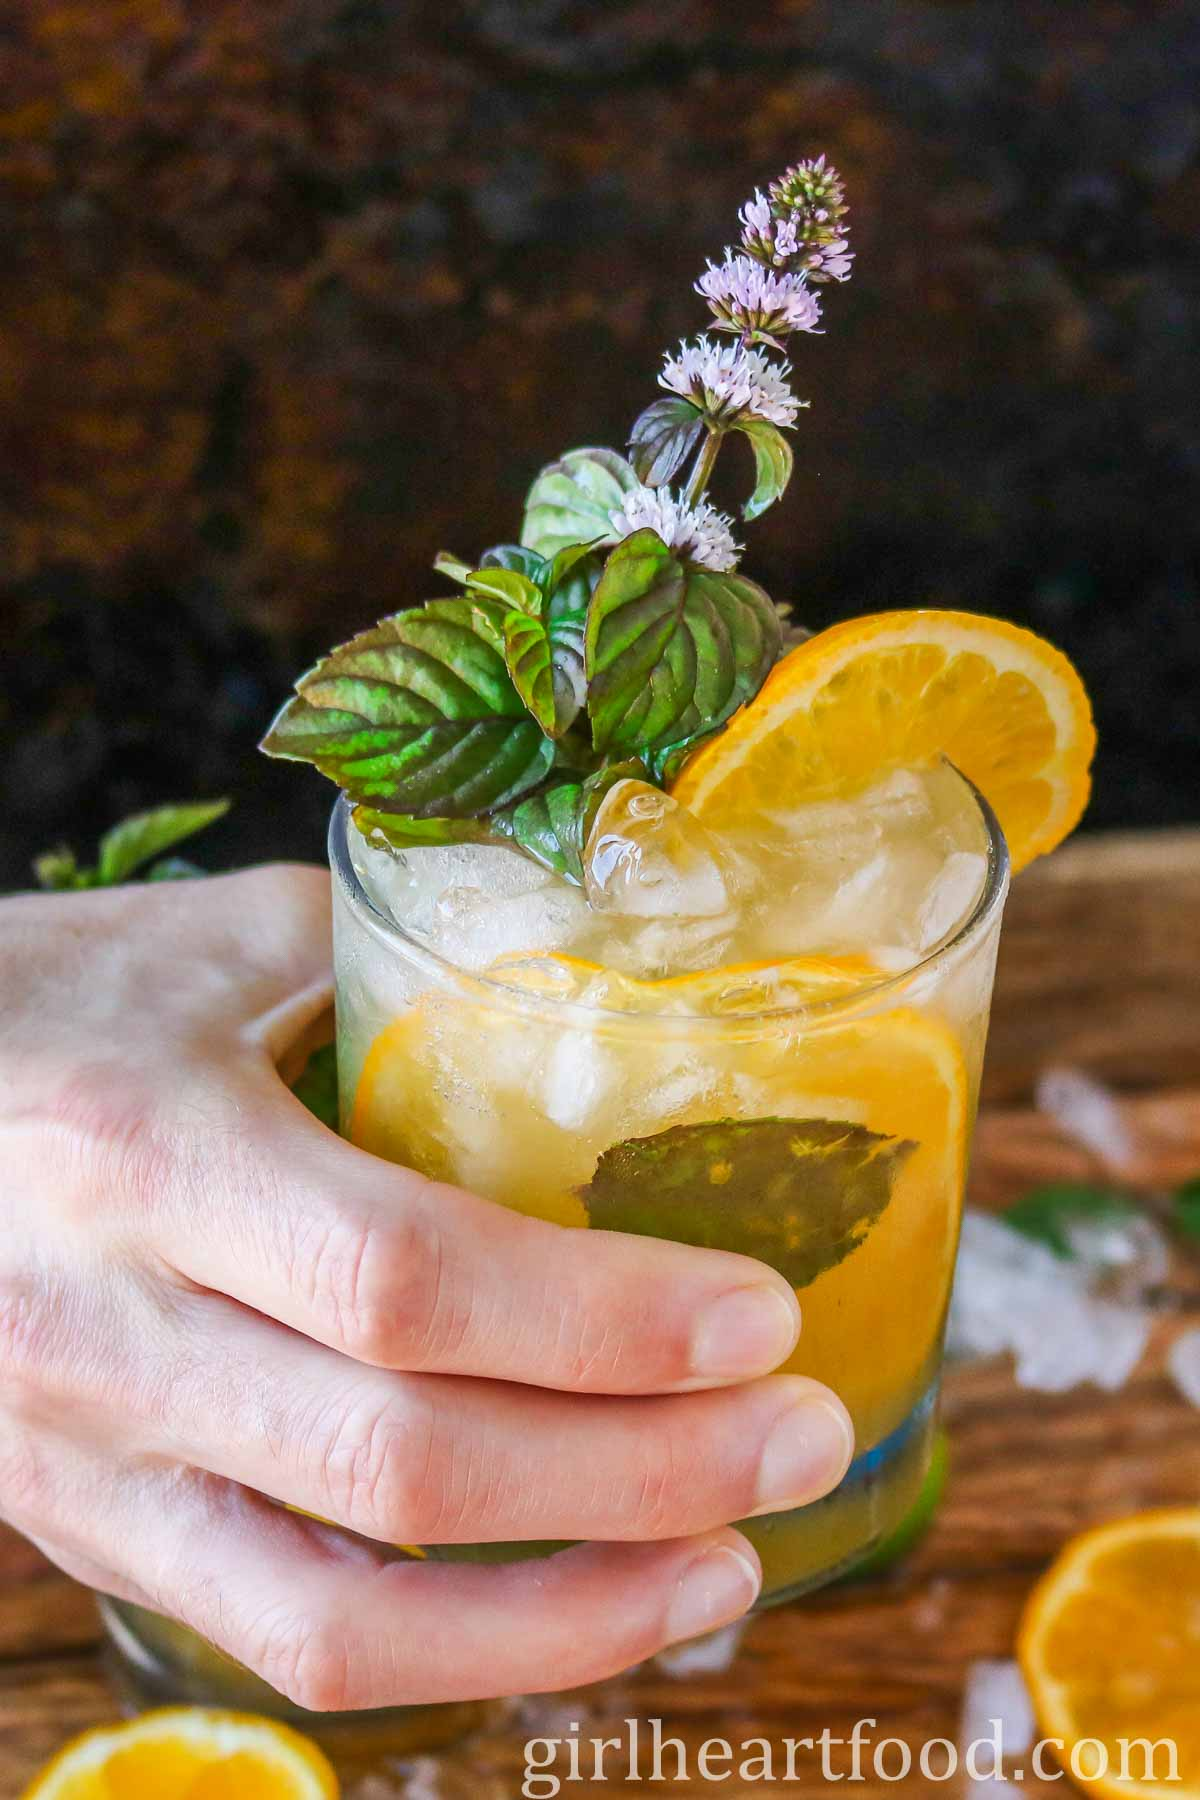 Hand holding a glass of orange mojito.